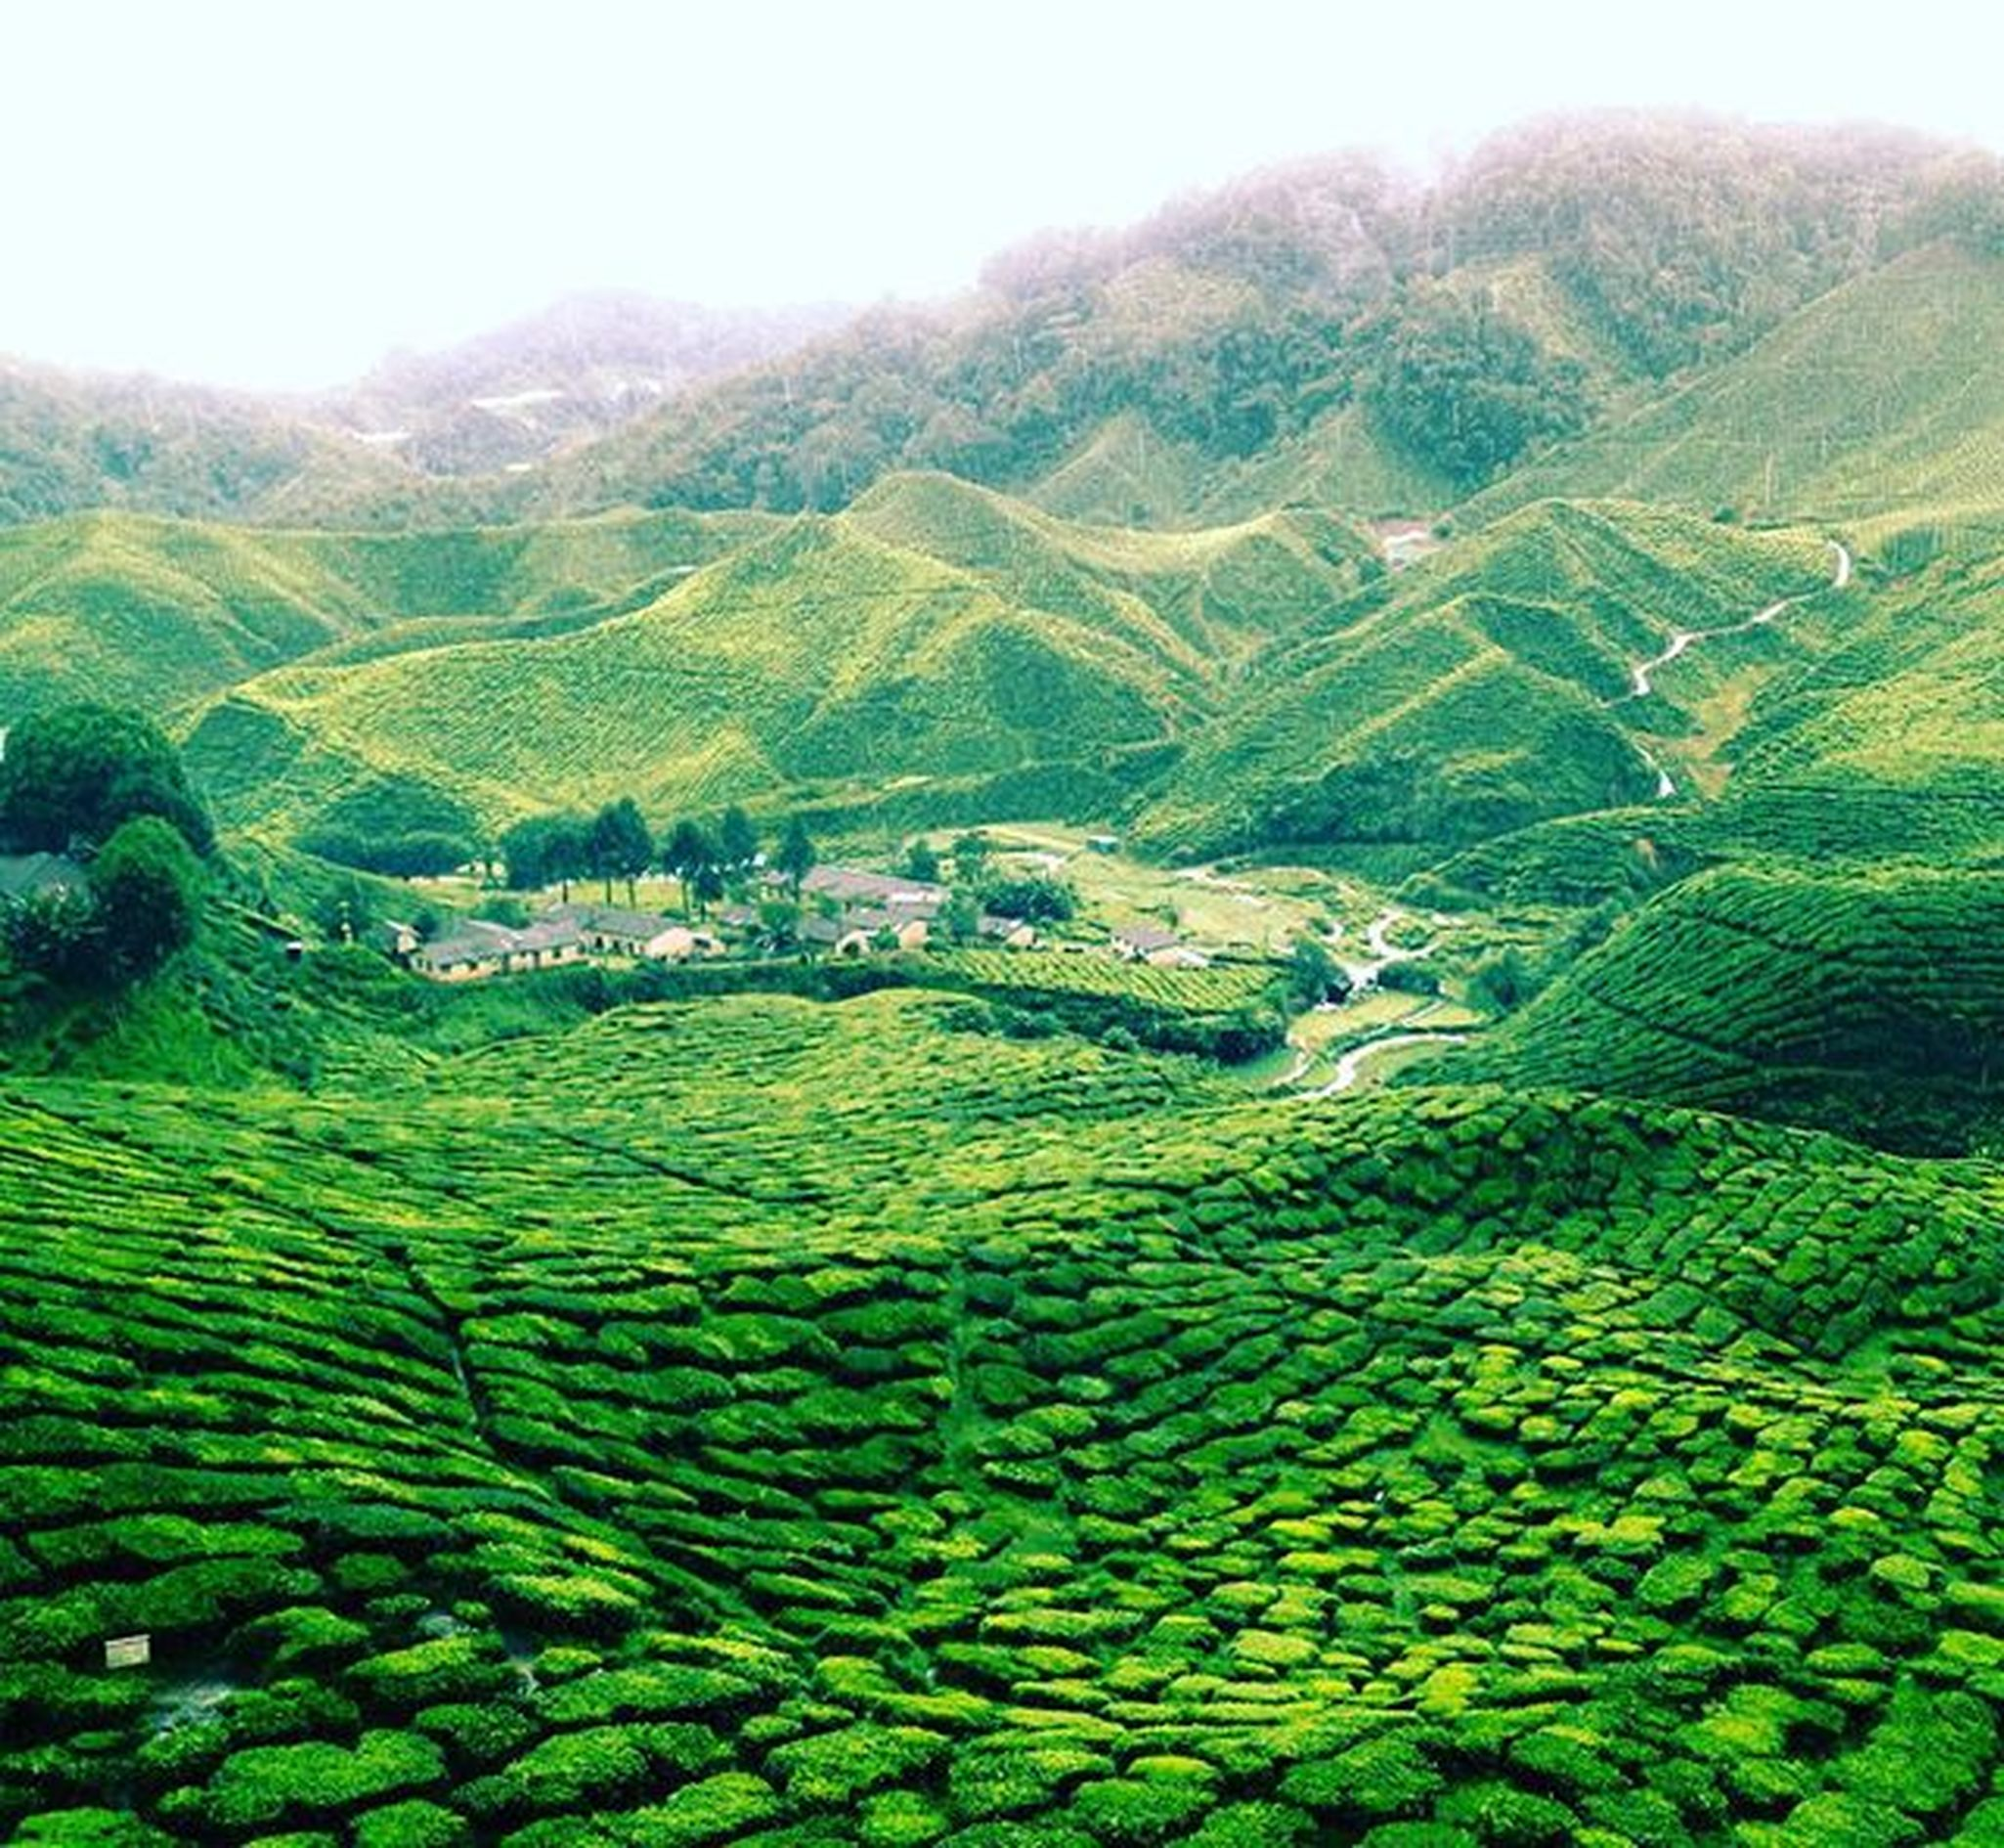 CameronValley Culinaryadventures Teahouse Cameronhighlands Pahang Malaysianig Instagram Instaphoto Photooftheday Afternoonwalk Travellingram Travel Travelling Culture Teaplantation Lifestyle Adventure Igers